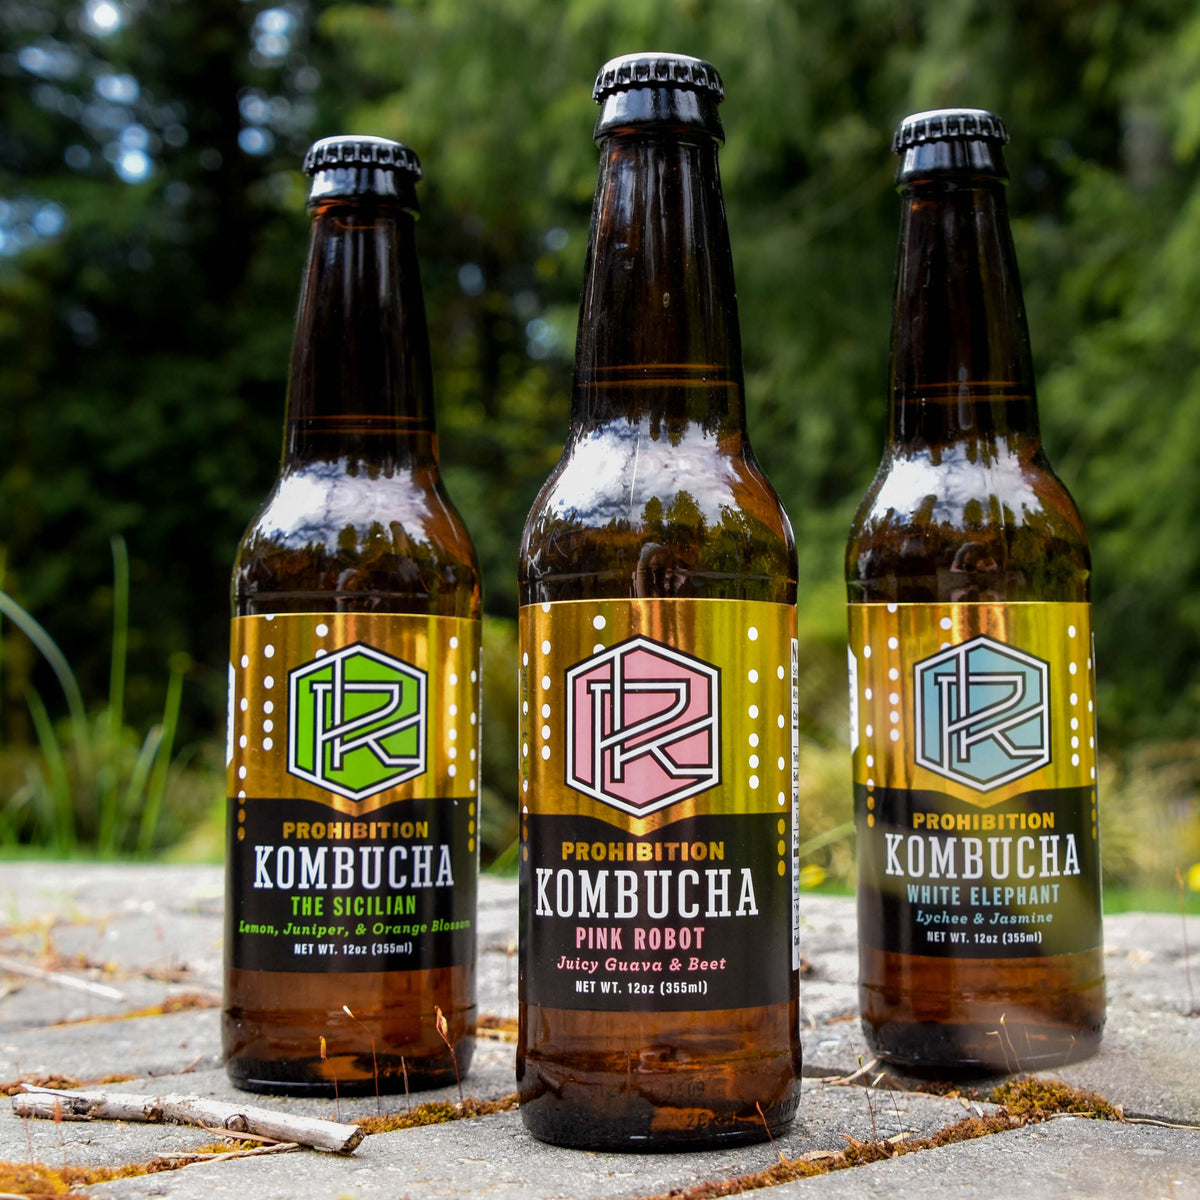 Prohibition Kombucha MIXED CASE - 12 pack